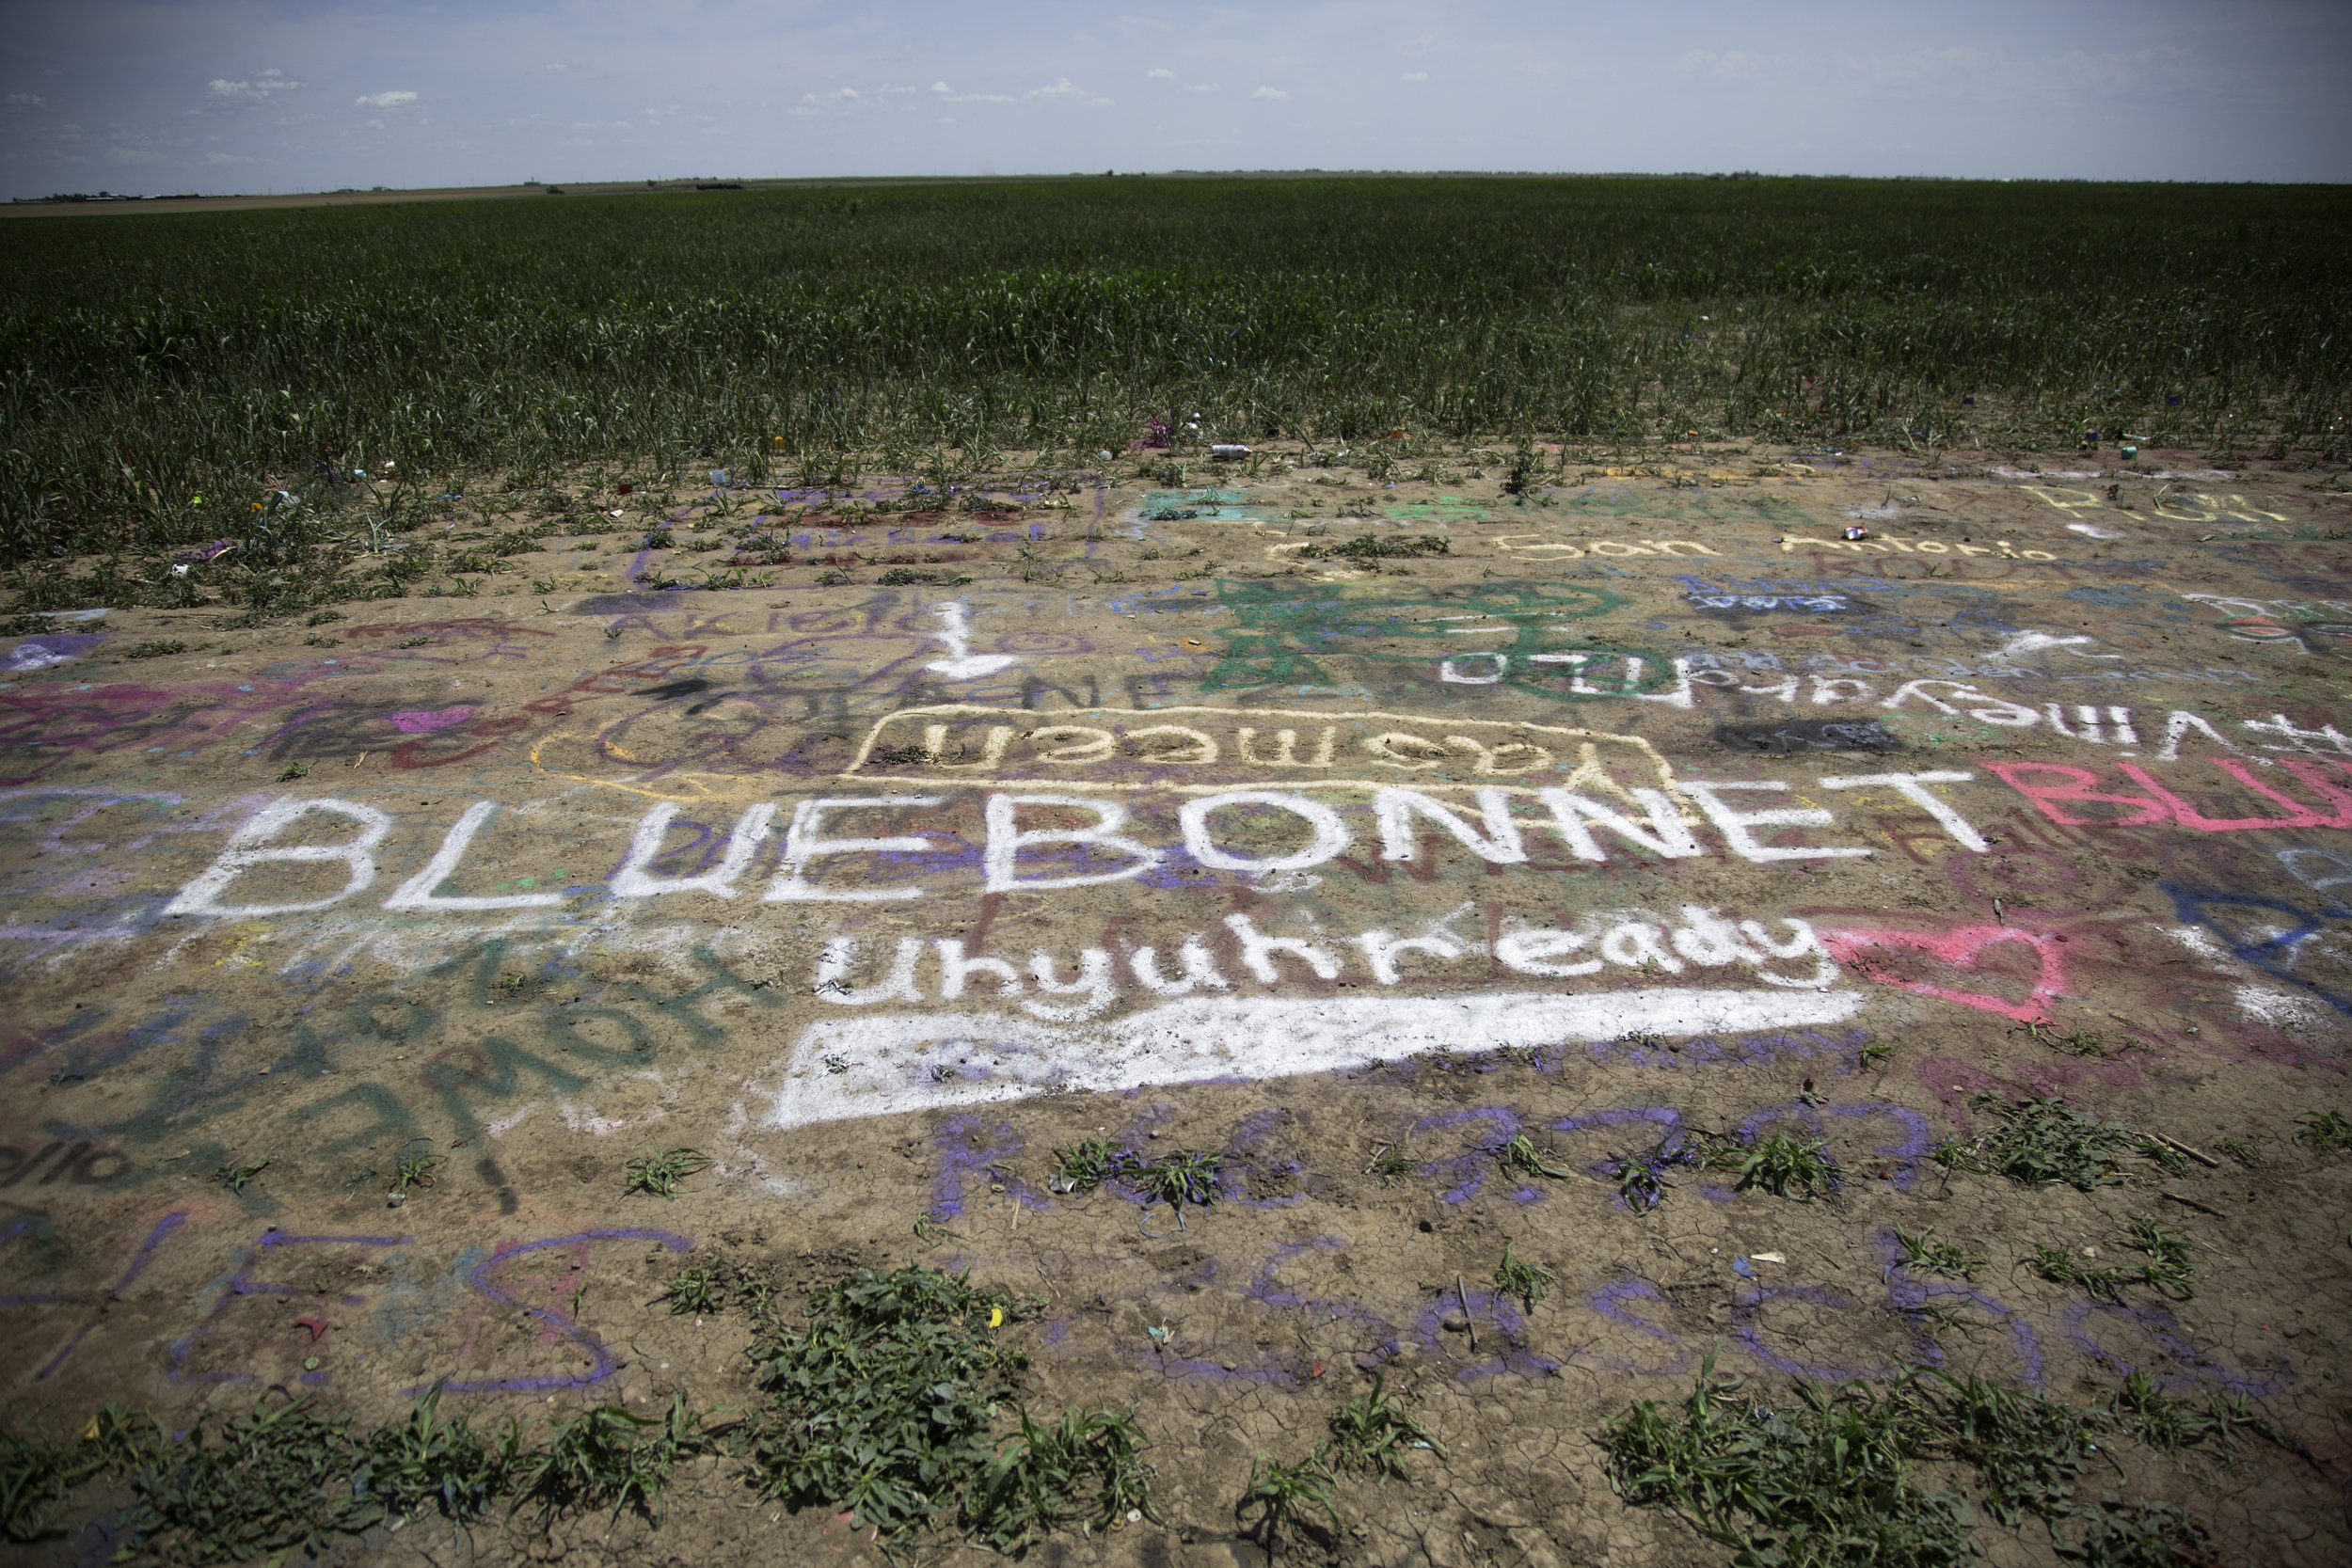 Spray paint on the ground at the Cadillac Ranch.